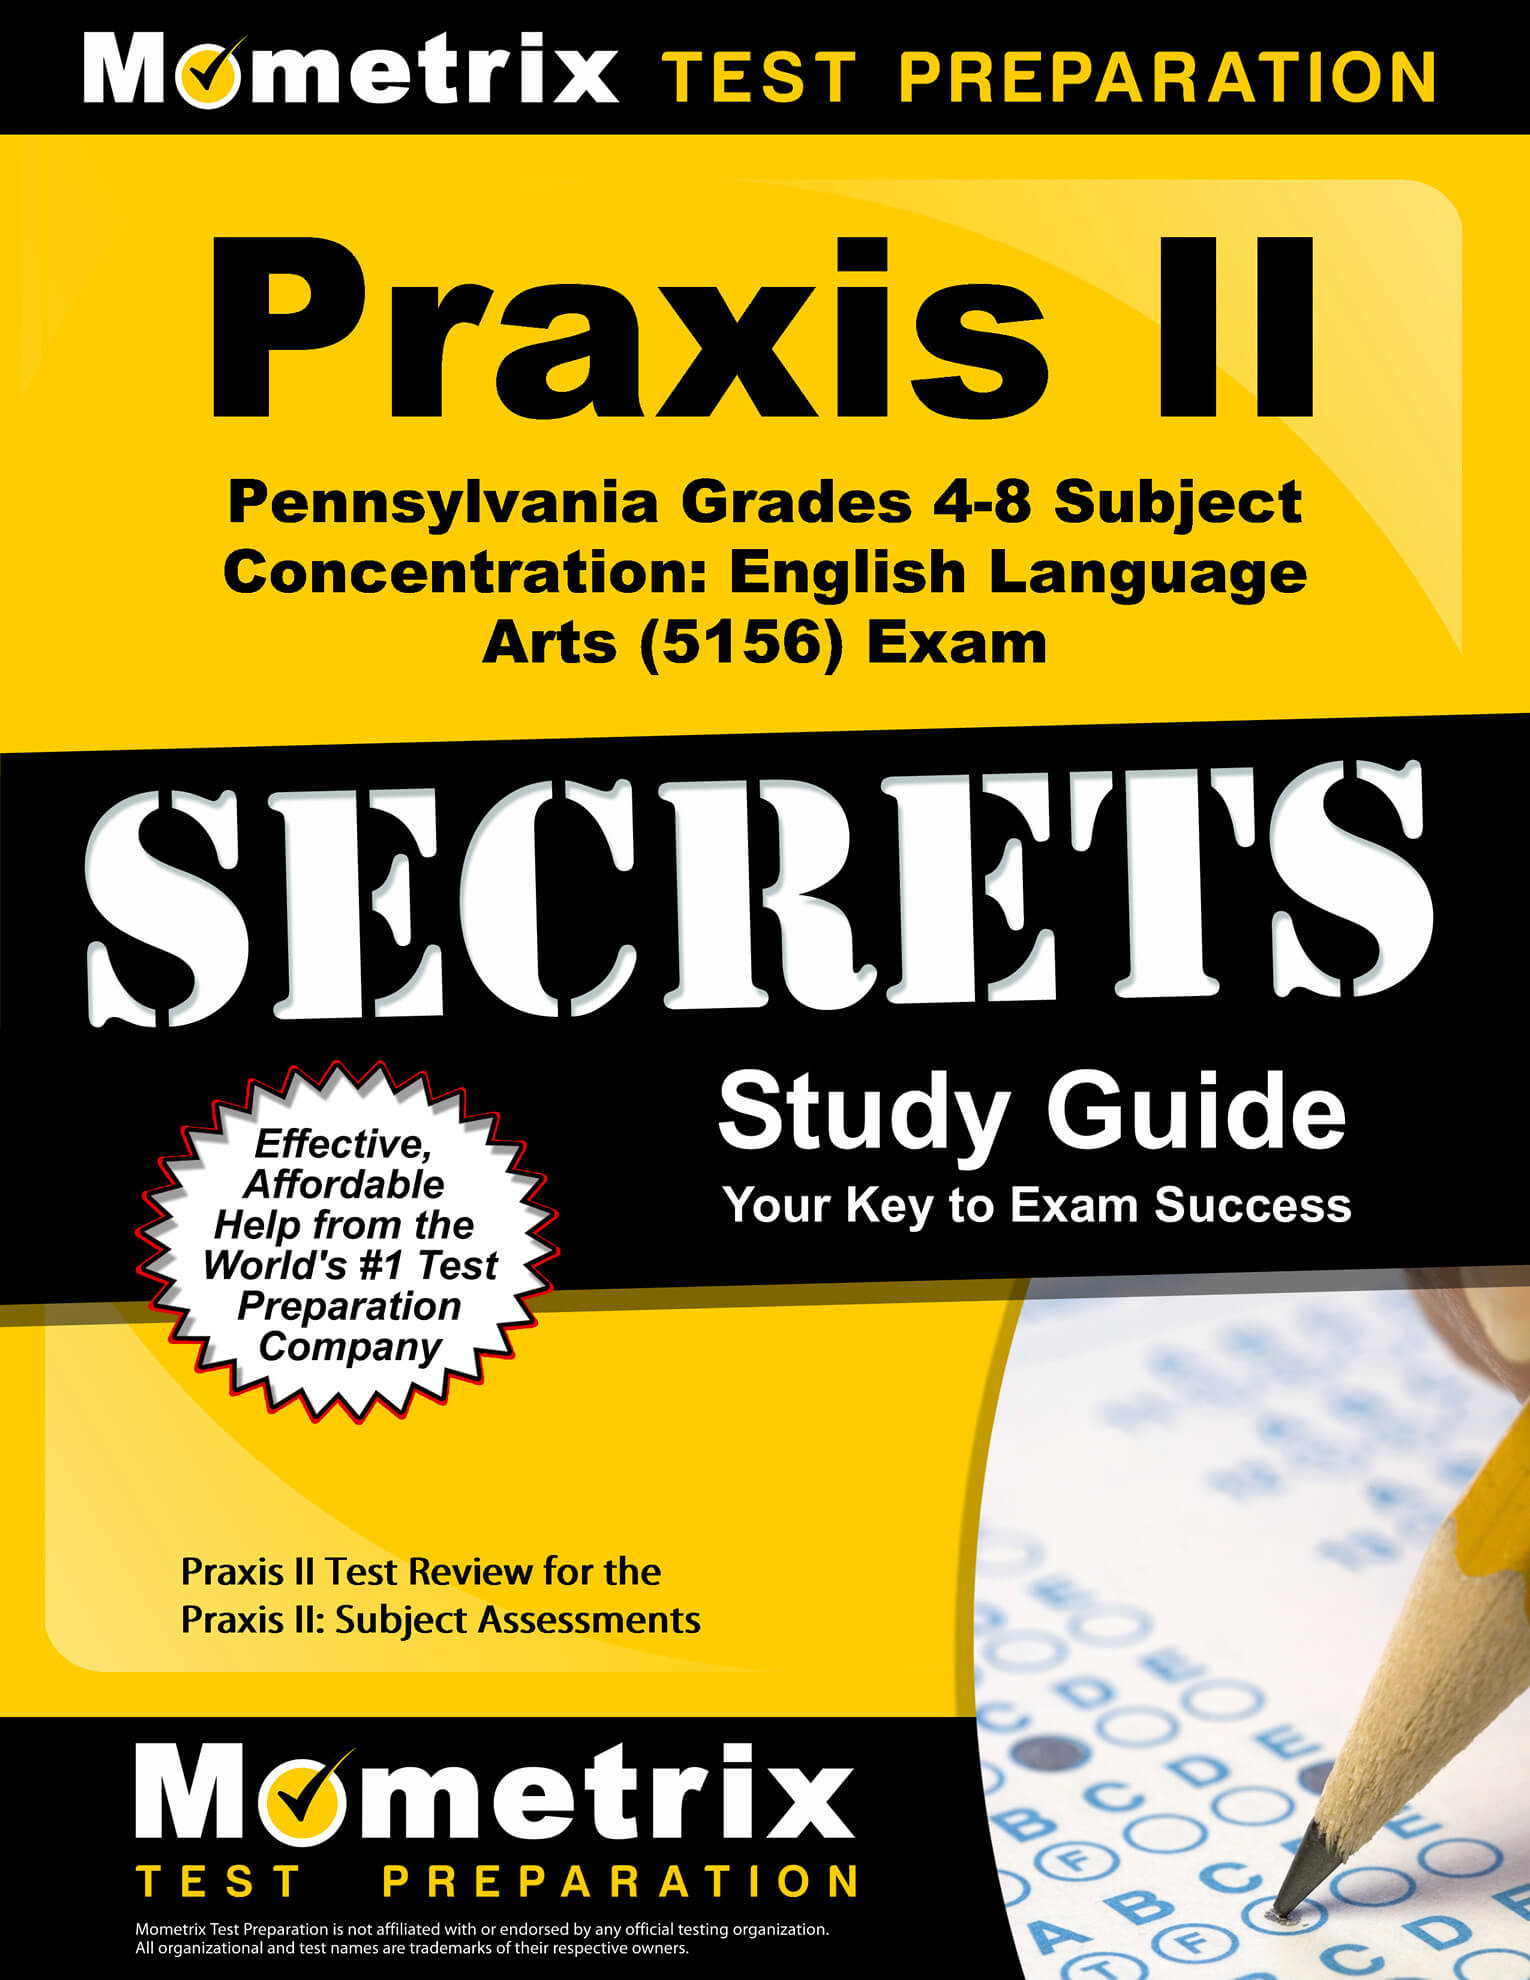 Praxis II Pennsylvania Grades 4-8 Subject Concentration: English Language Arts Study Guide